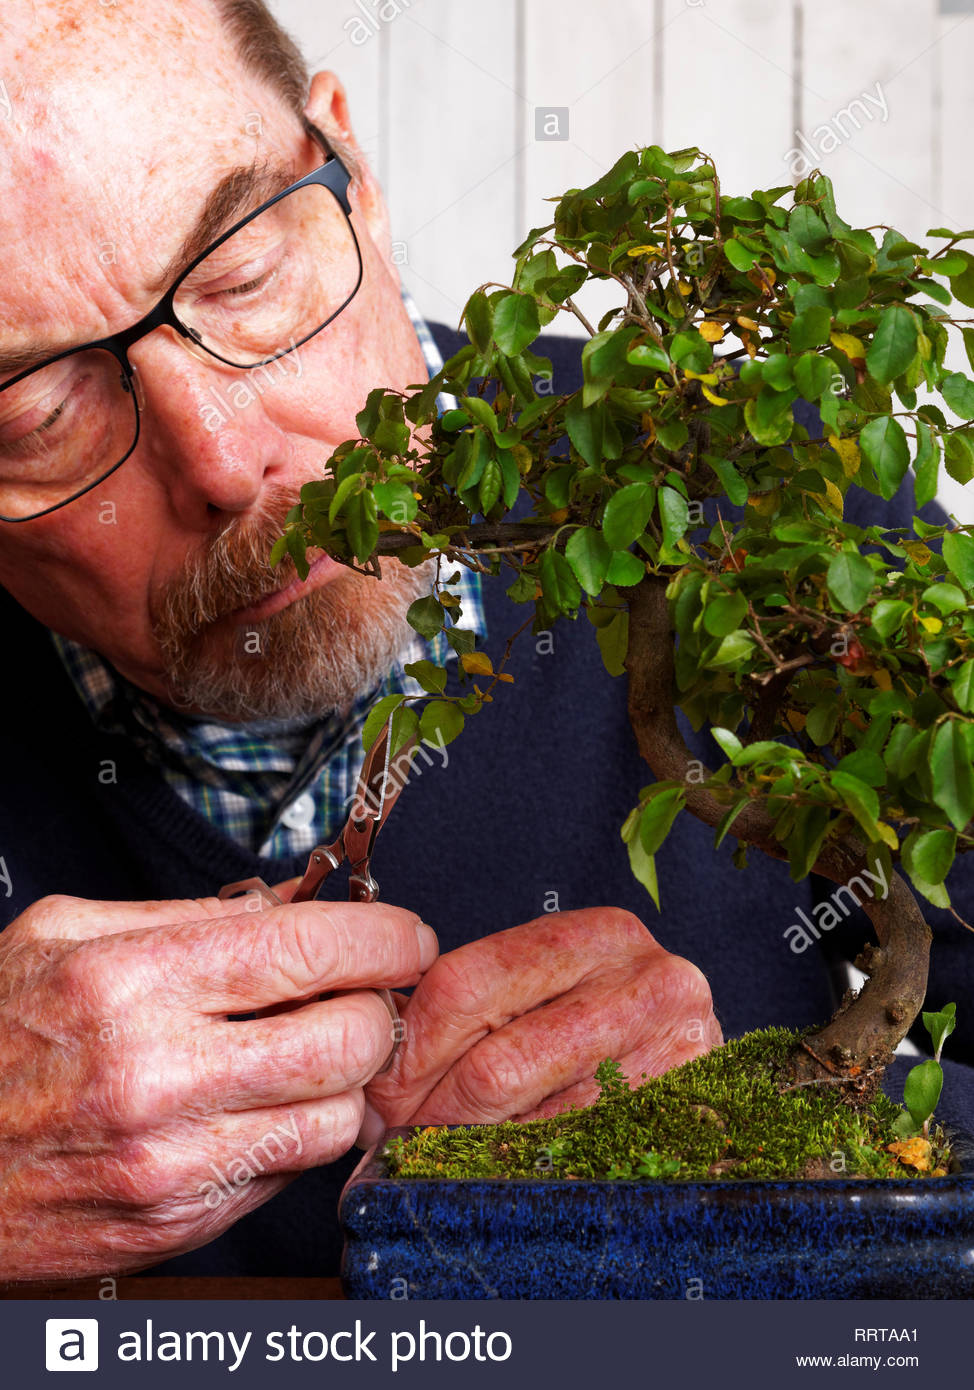 Man With Glasses Pruning Caring Sageretia Theezans Bonsai Stock Photo Alamy